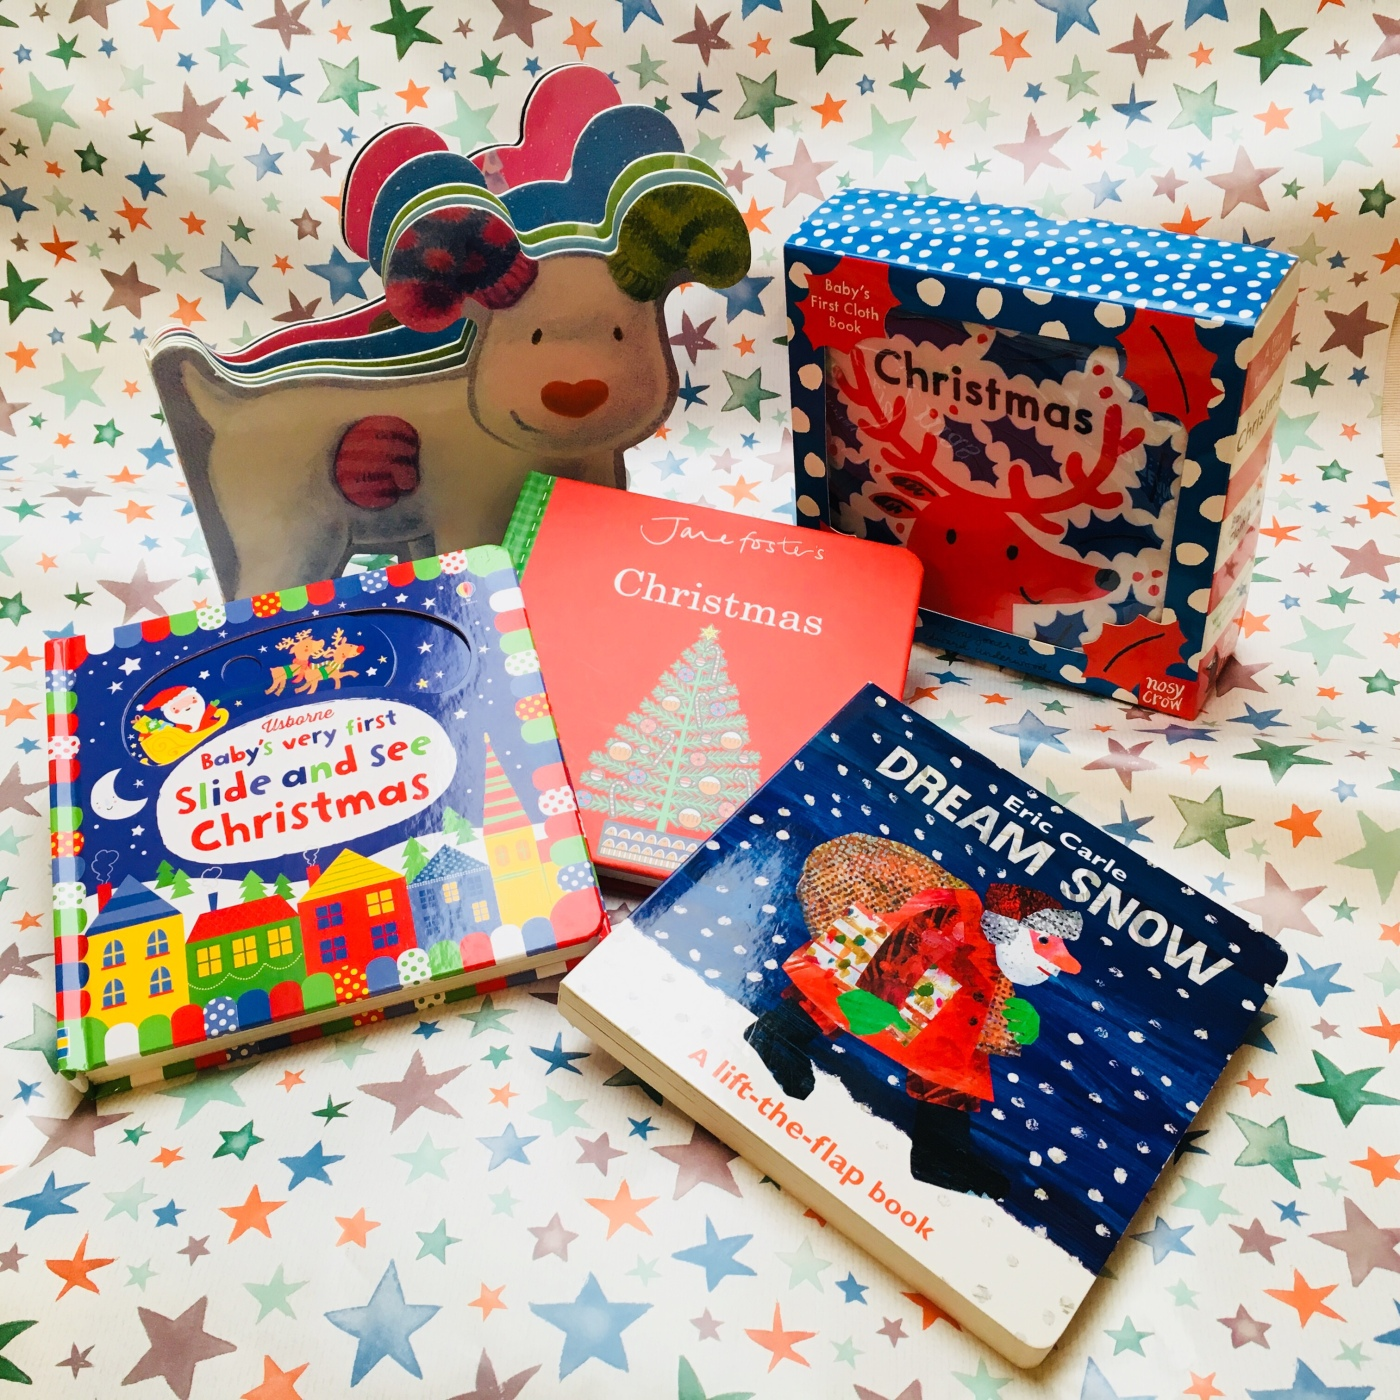 Usborne Christmas Books 2019 12 of the best first Christmas books for babies and toddlers